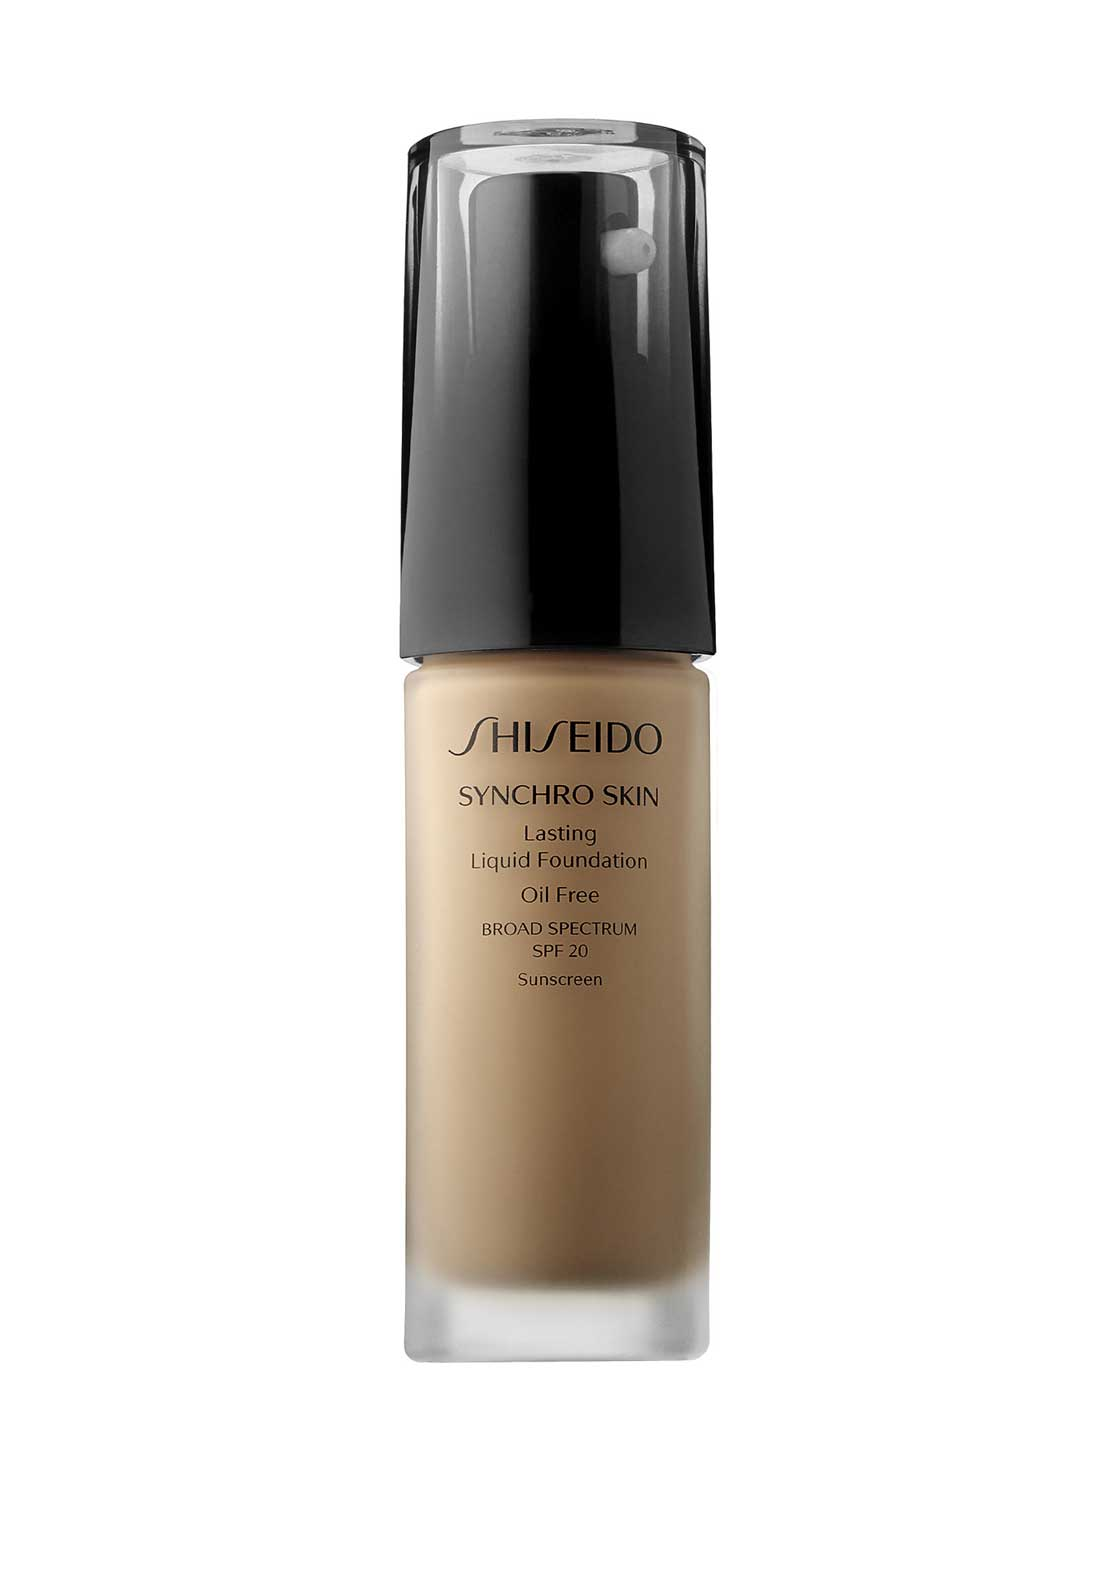 Shiseido Synchro Skin Lasting Liquid Foundation, Broad Spectrum SPF 20, Natural 4